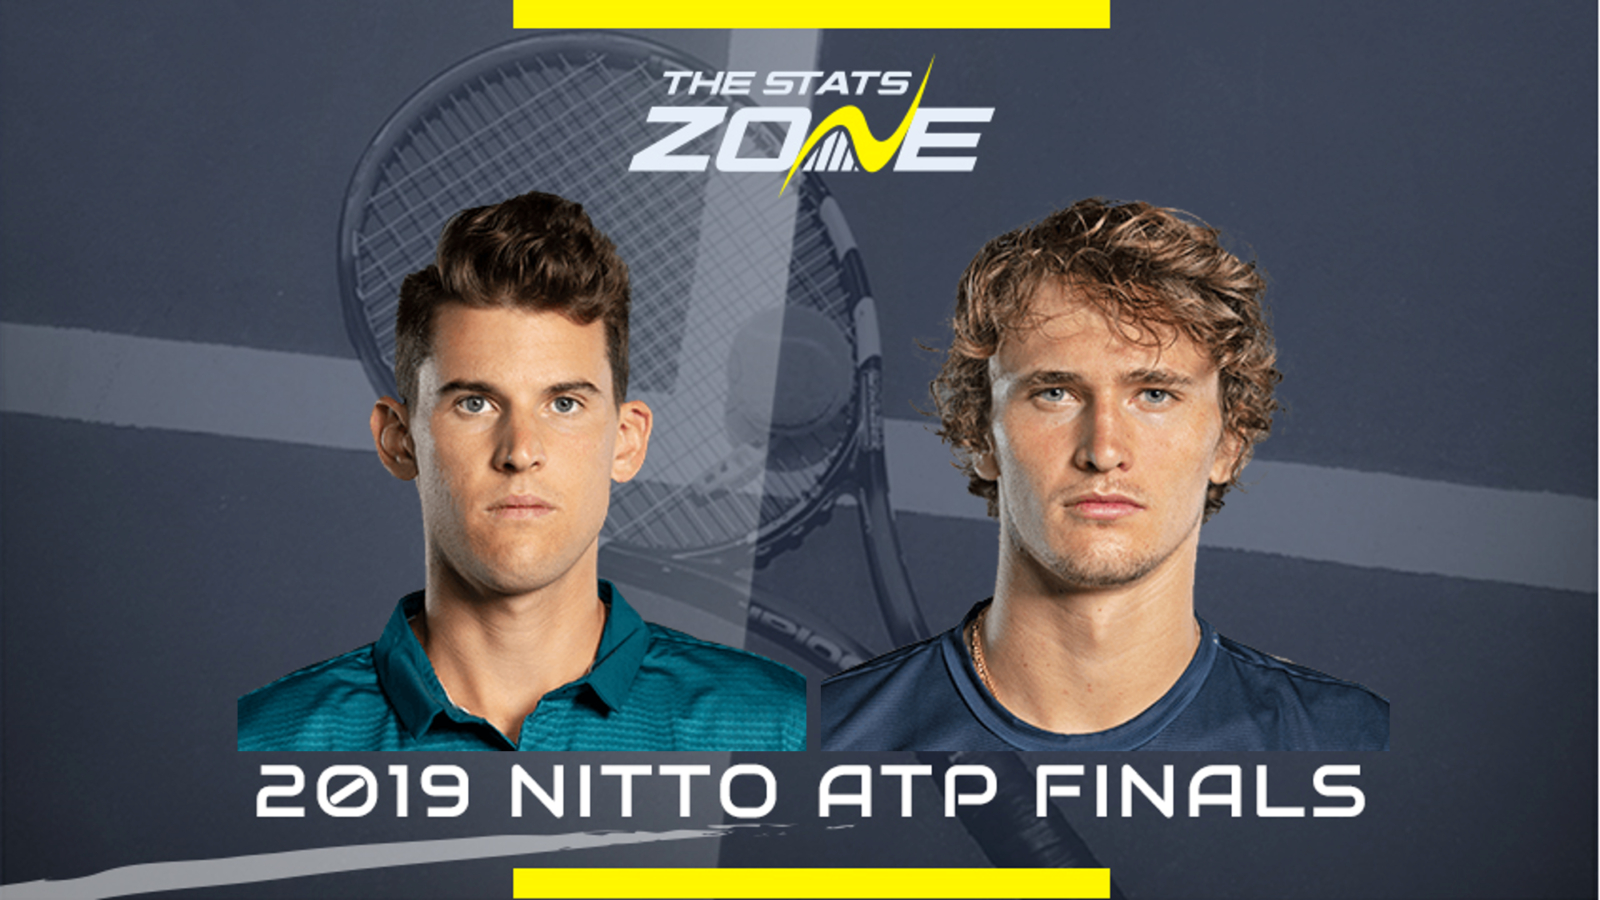 Atp Finals 2019 Dominic Thiem Vs Alexander Zverev Preview Prediction The Stats Zone